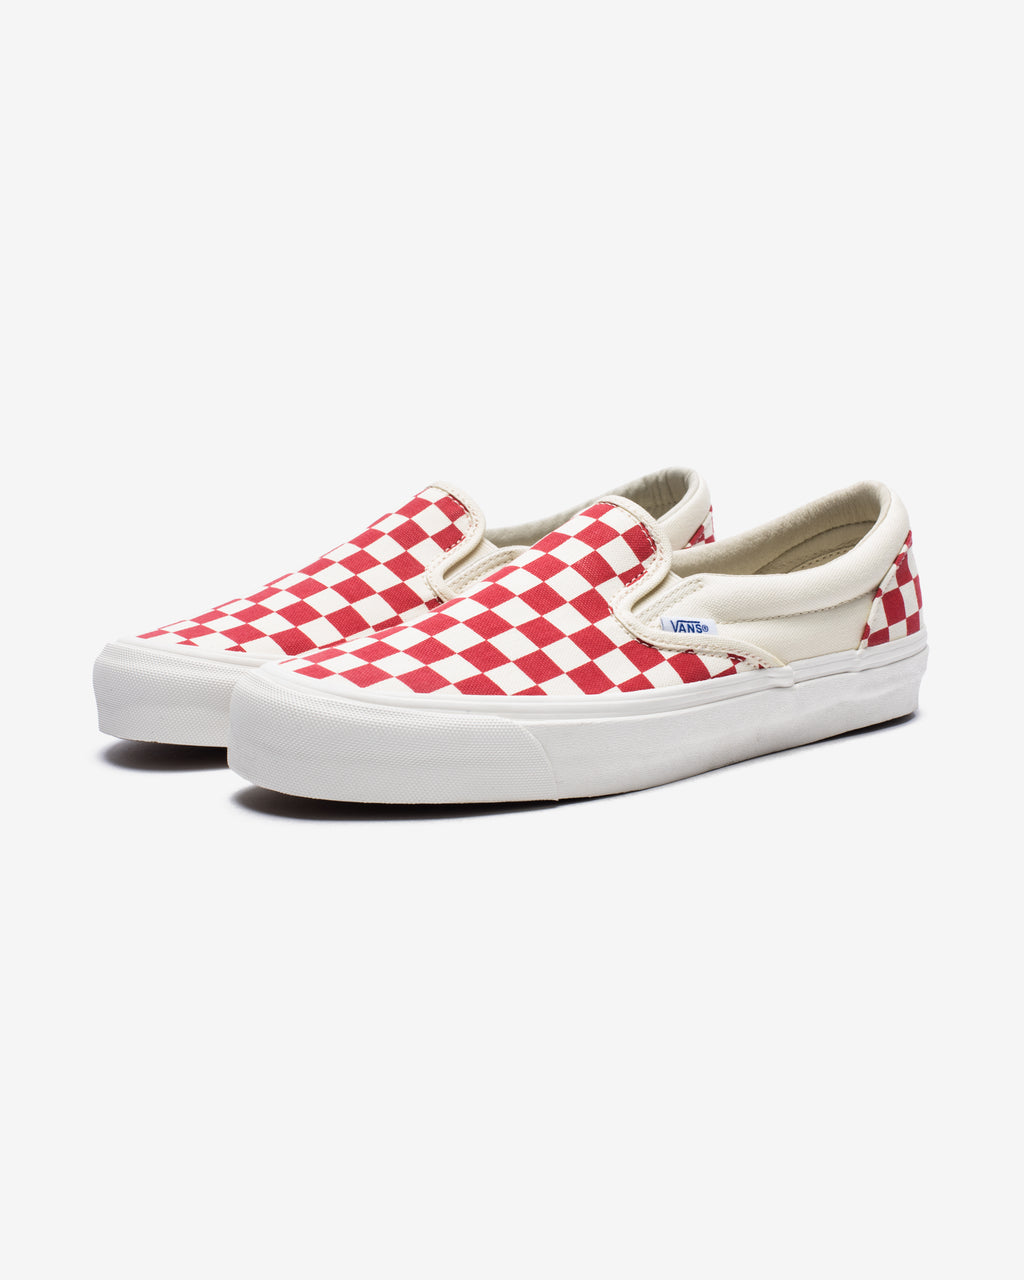 OG CLASSIC SLIP-ON LX (CHECKERBOARD) - WHT/RED